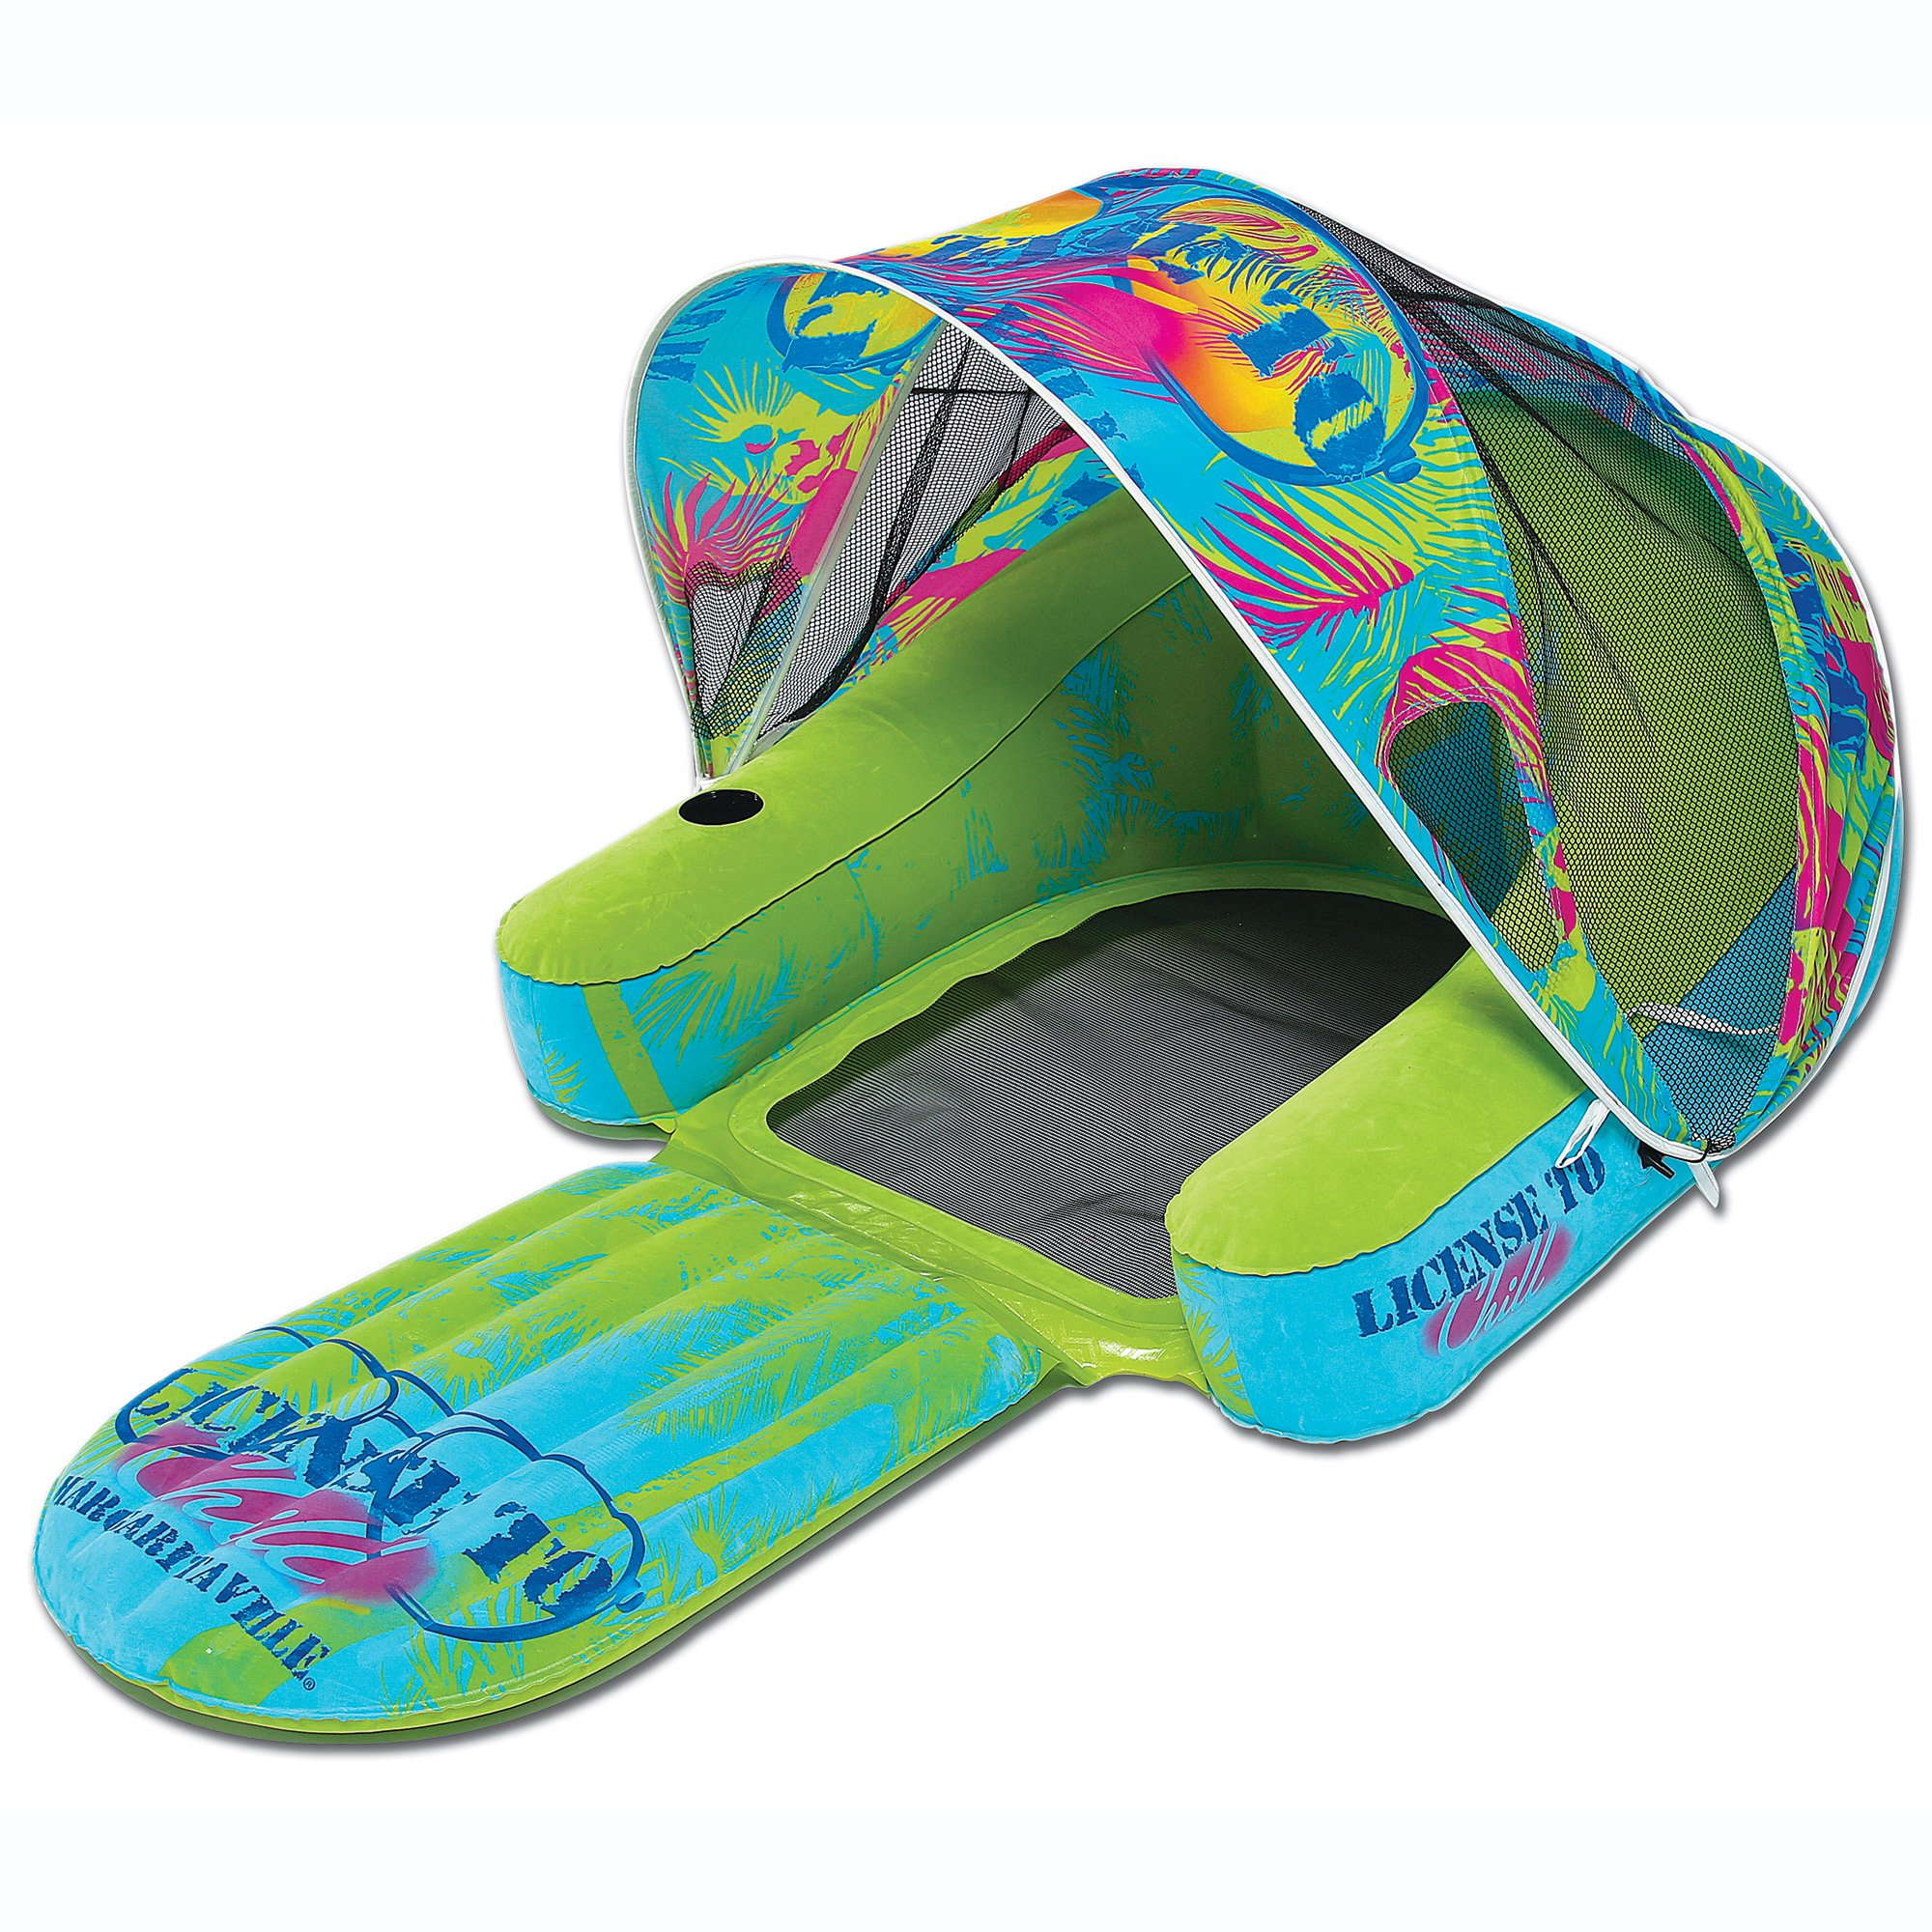 Margaritaville Inflatable Cabana Chair Lounge Raft Float with Canopy Sun Shade